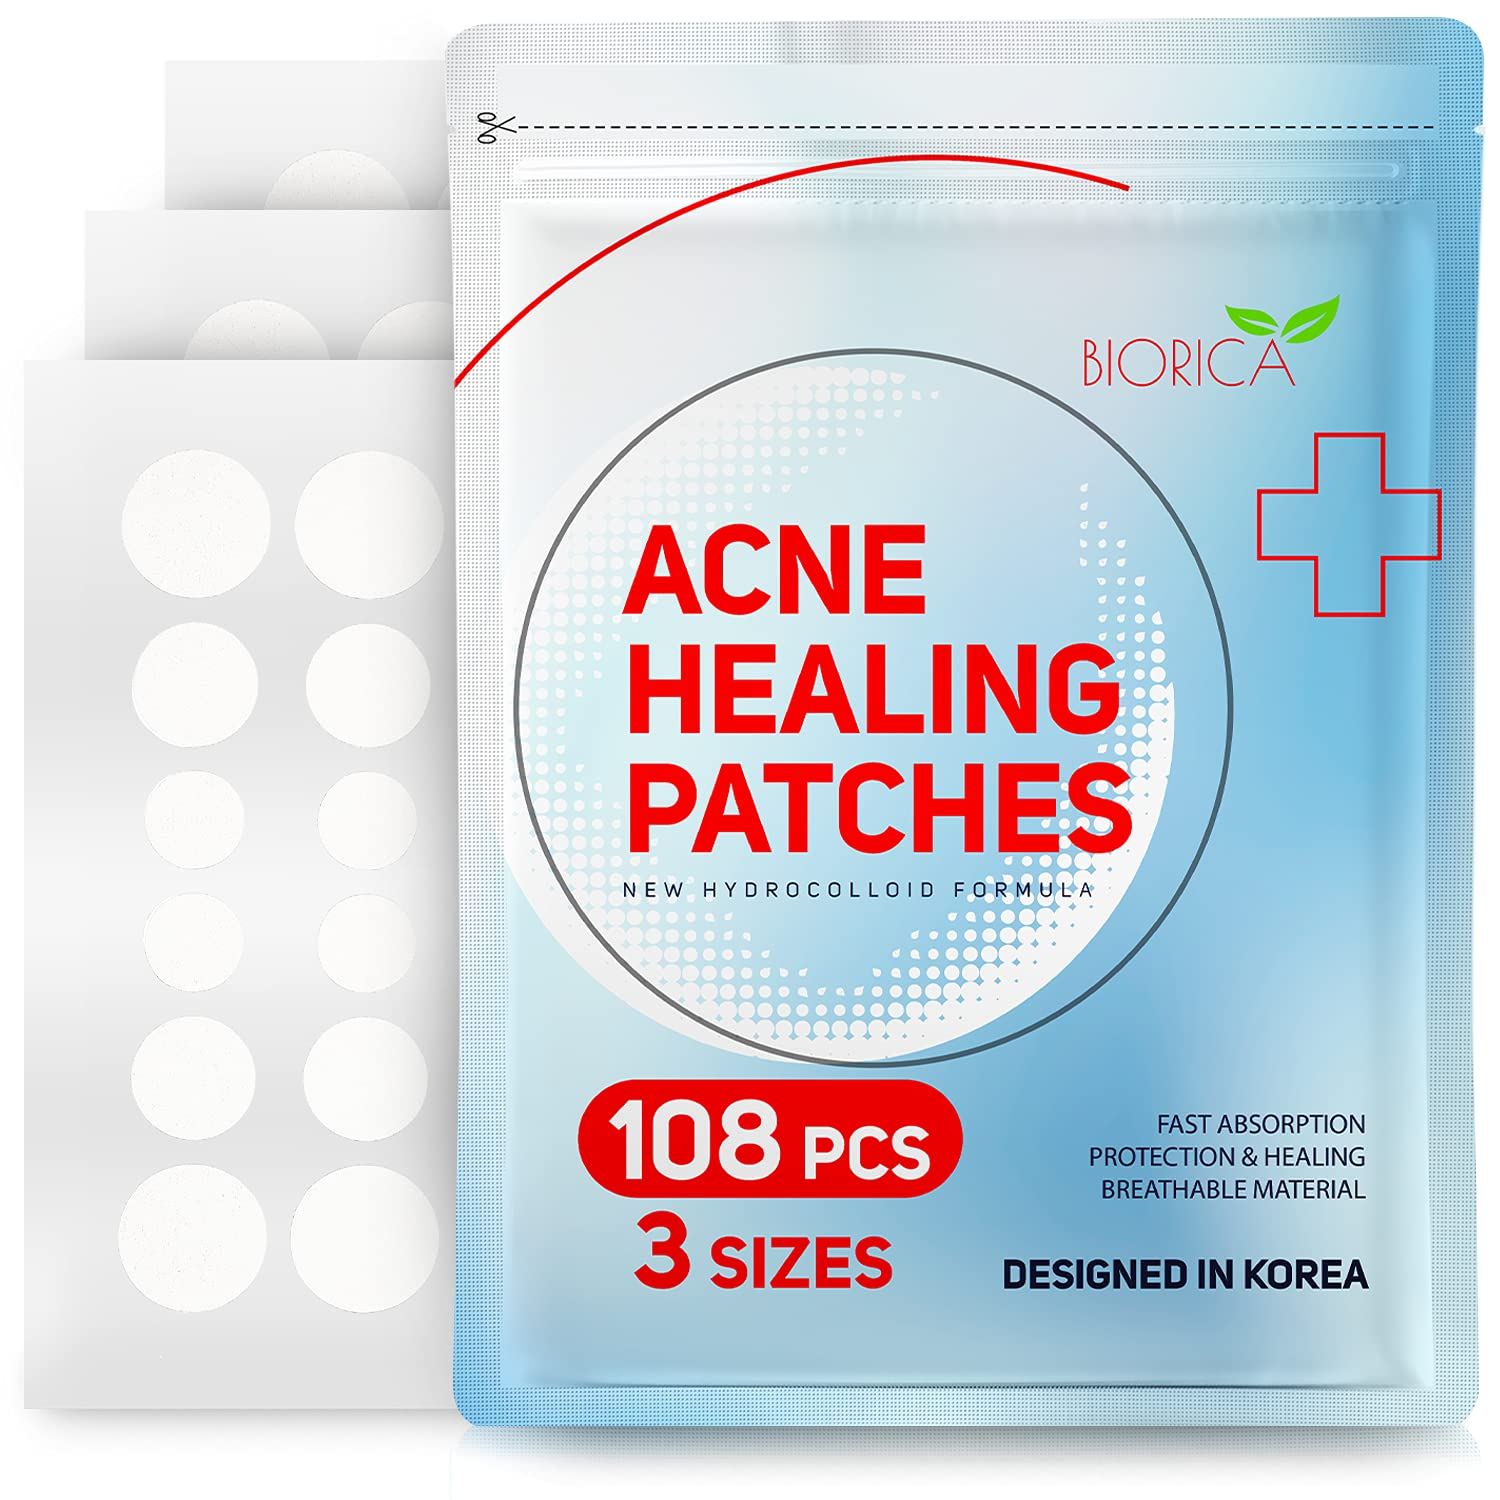 Invisible Acne Challenge the lowest price of Japan Patch mart Pimple Healing. Hydrocolloid Spot Tre